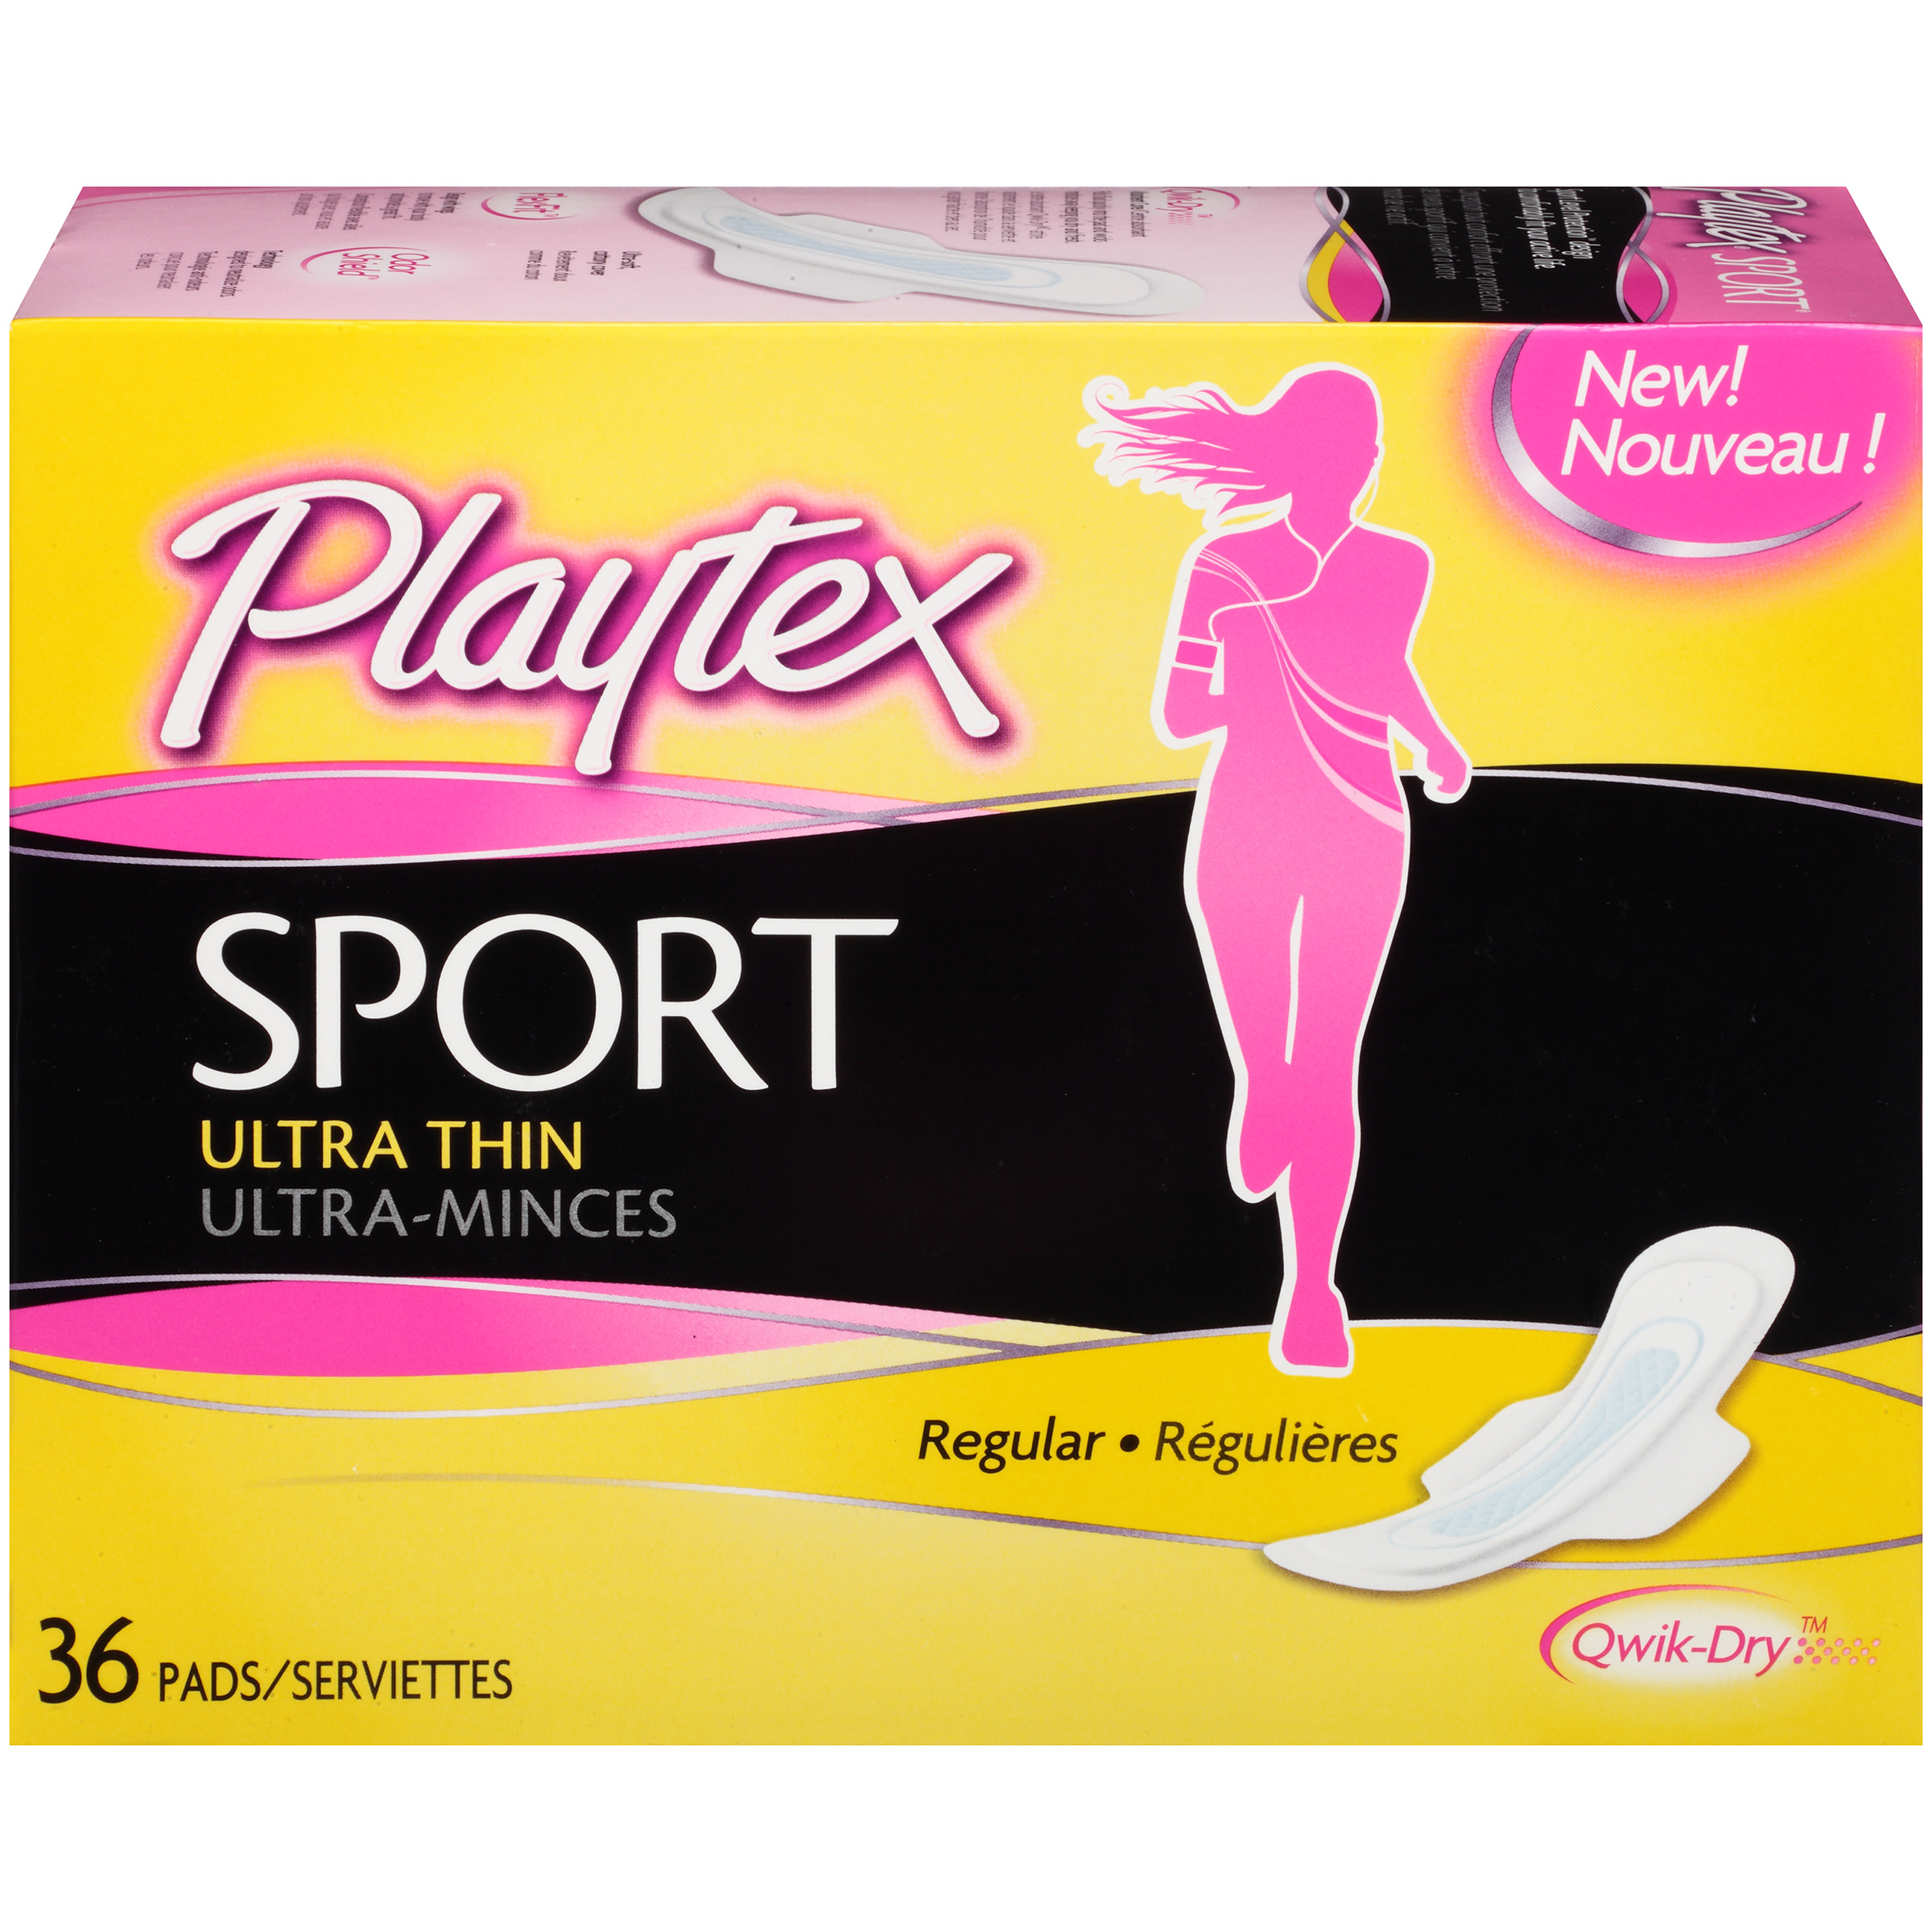 Playtex Sport Ultra Thin Pads With Wings Regular Absorbency - 36 Count